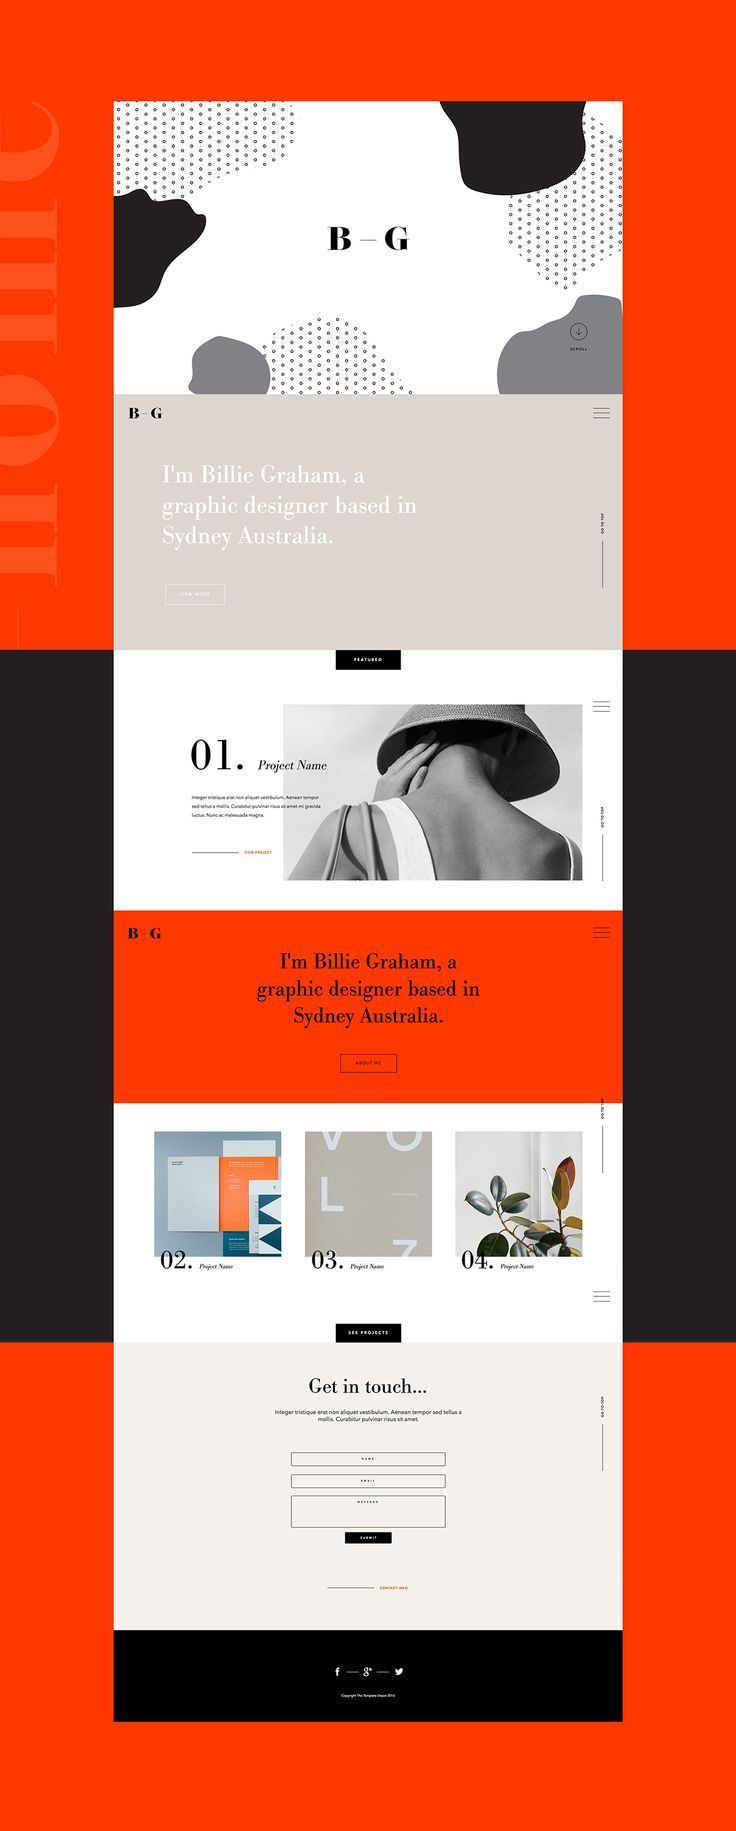 Presentation Design Ideas, Simple design layout | Graphic Design ...